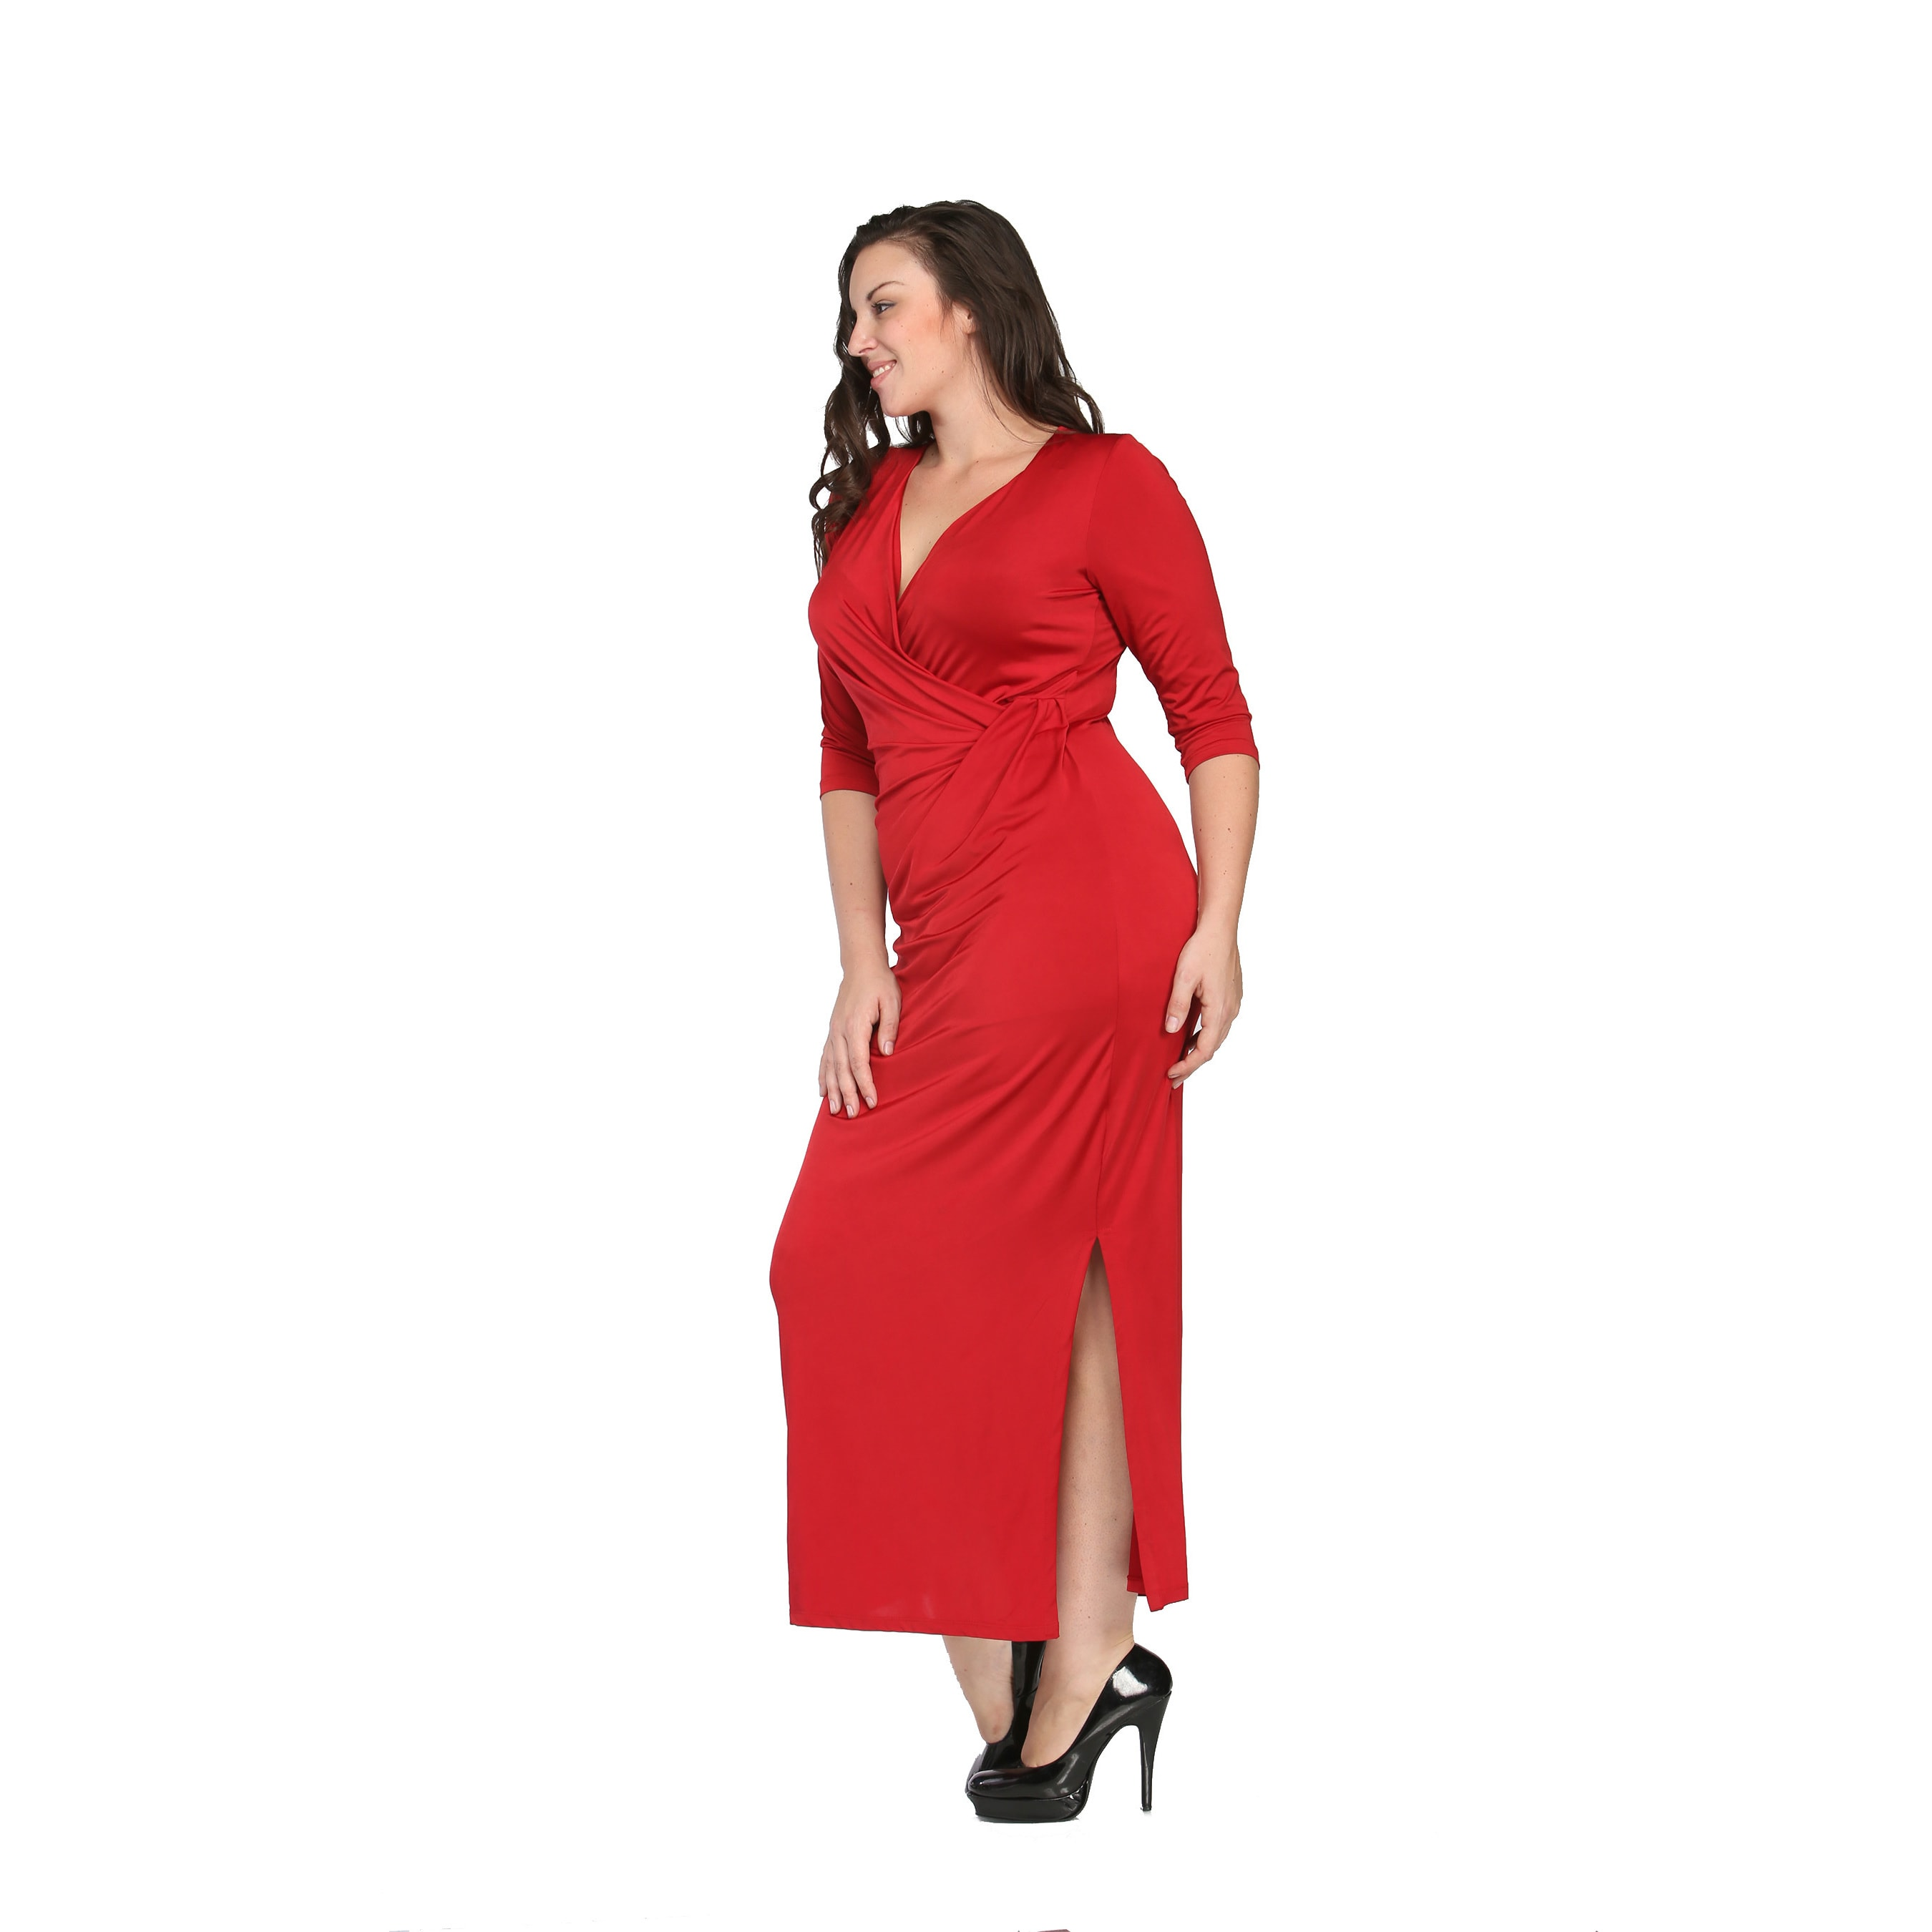 e035e5ffa03 Shop 24 7 Comfort Apparel Women s Plus Size Long V-neck Wrap Dress - On  Sale - Free Shipping On Orders Over  45 - Overstock - 9464349